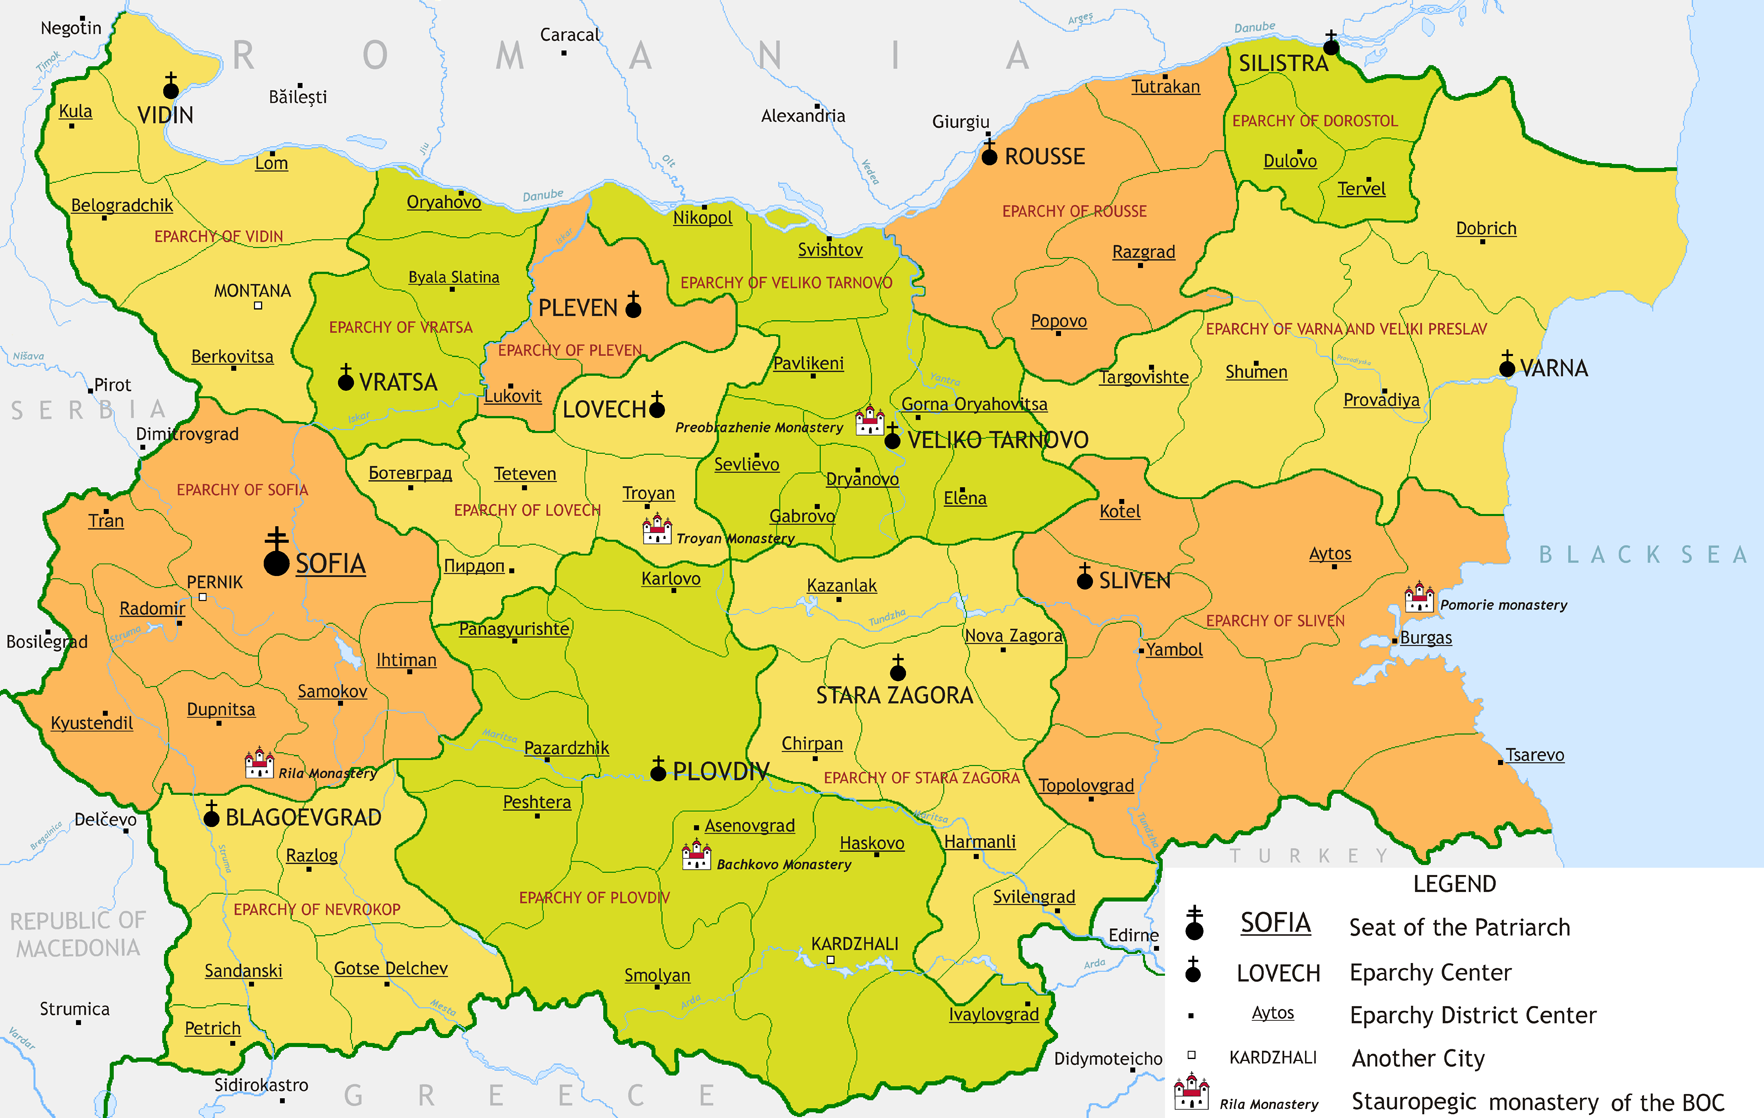 landkarte bulgarien Atlas of Bulgaria   Wikimedia Commons landkarte bulgarien